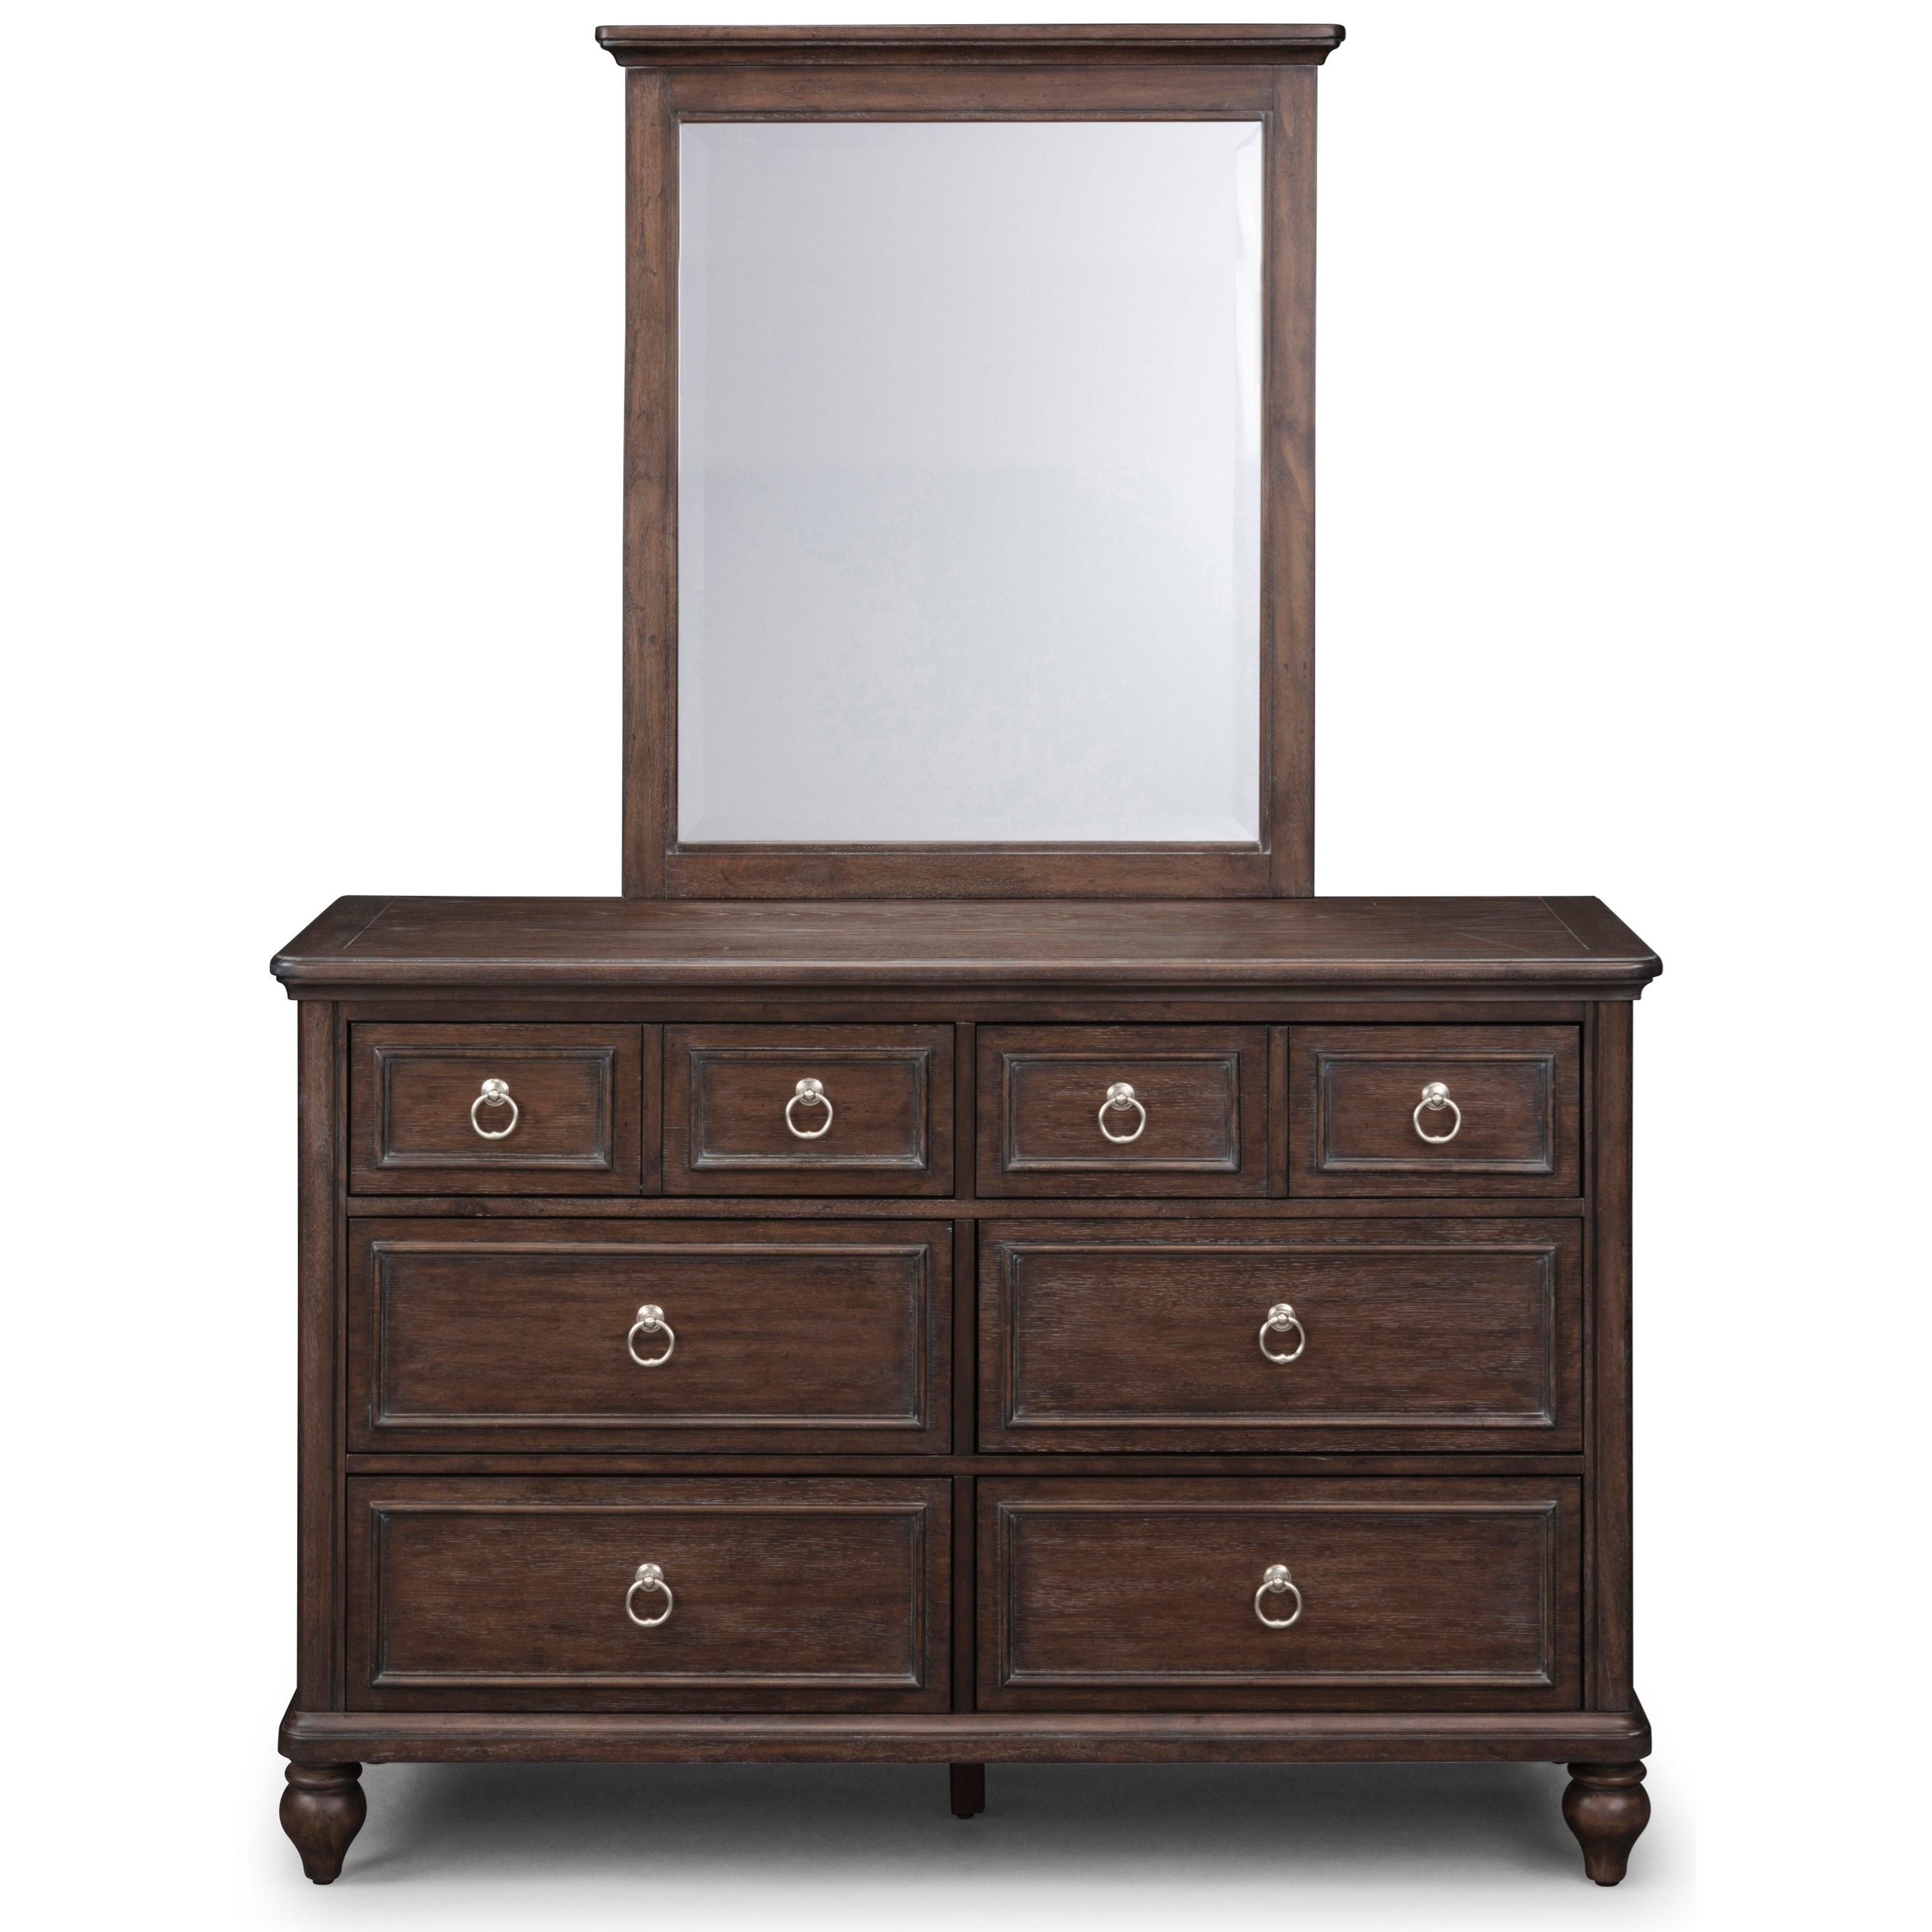 Southport Dresser and Mirror Set by Homestyles at Northeast Factory Direct